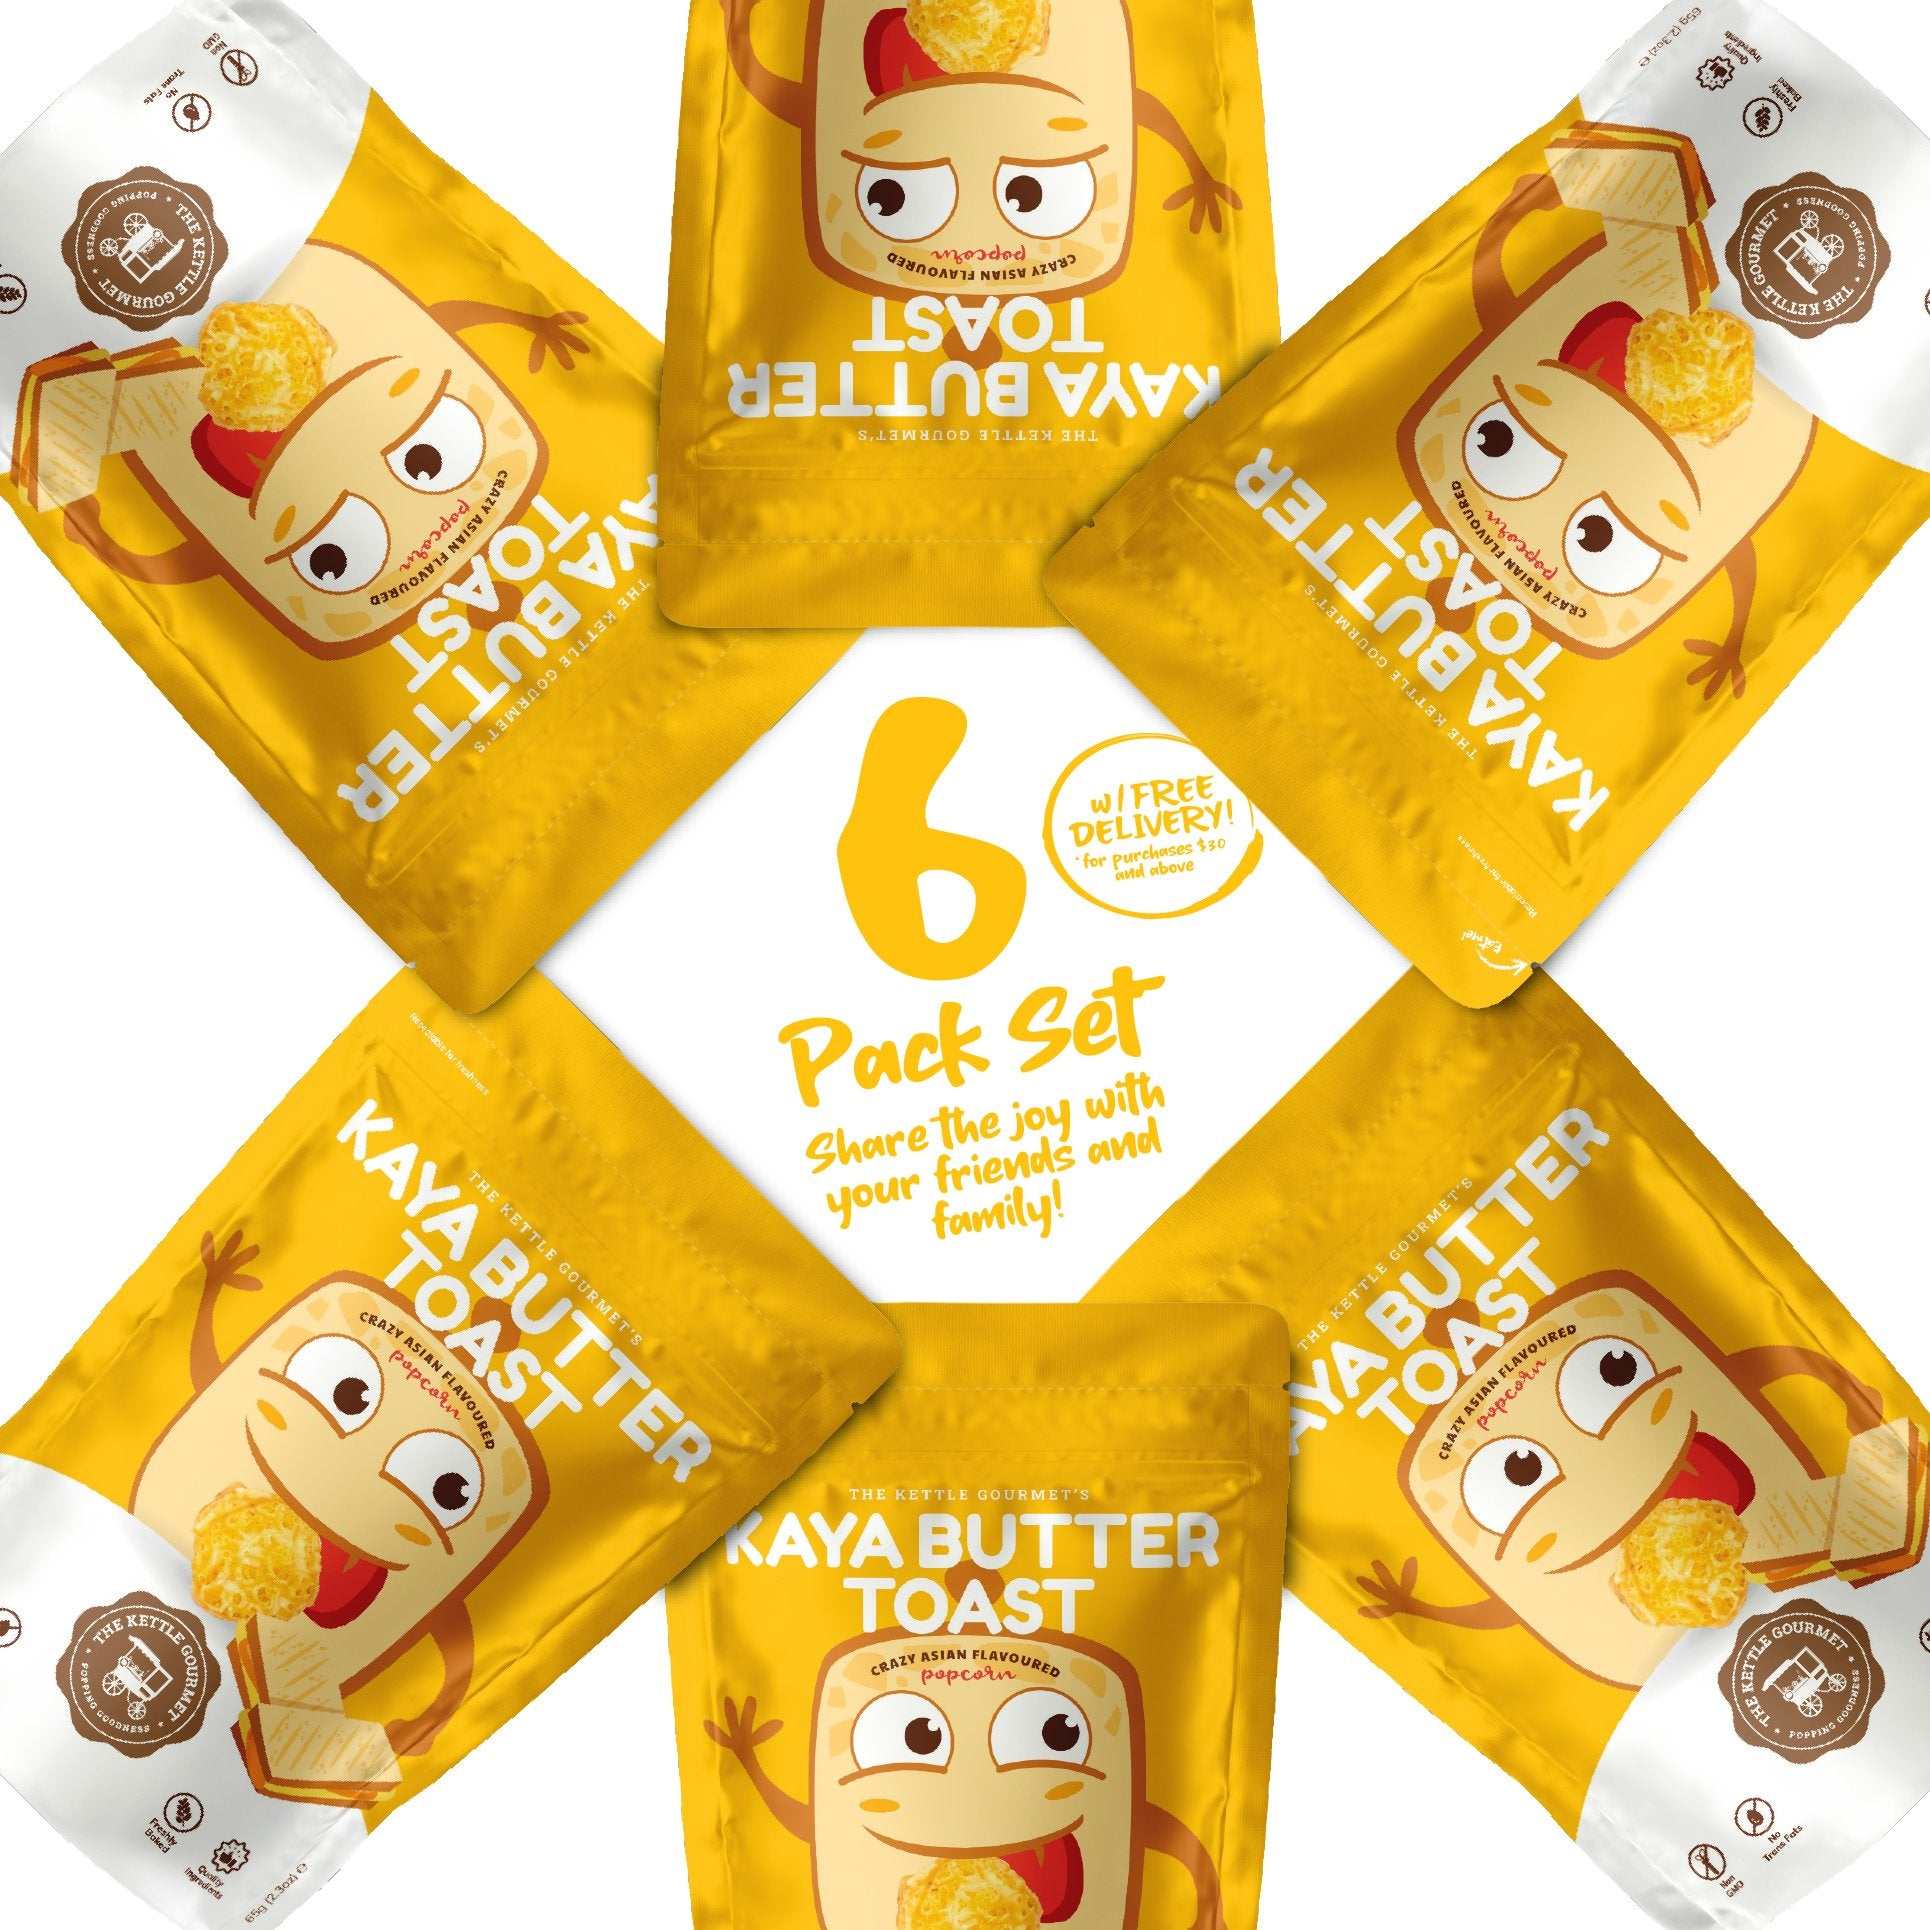 The Kettle Gourmet's Kaya Butter Toast 6 pack set containing 6 Kaya Butter Toast Snack Monsters